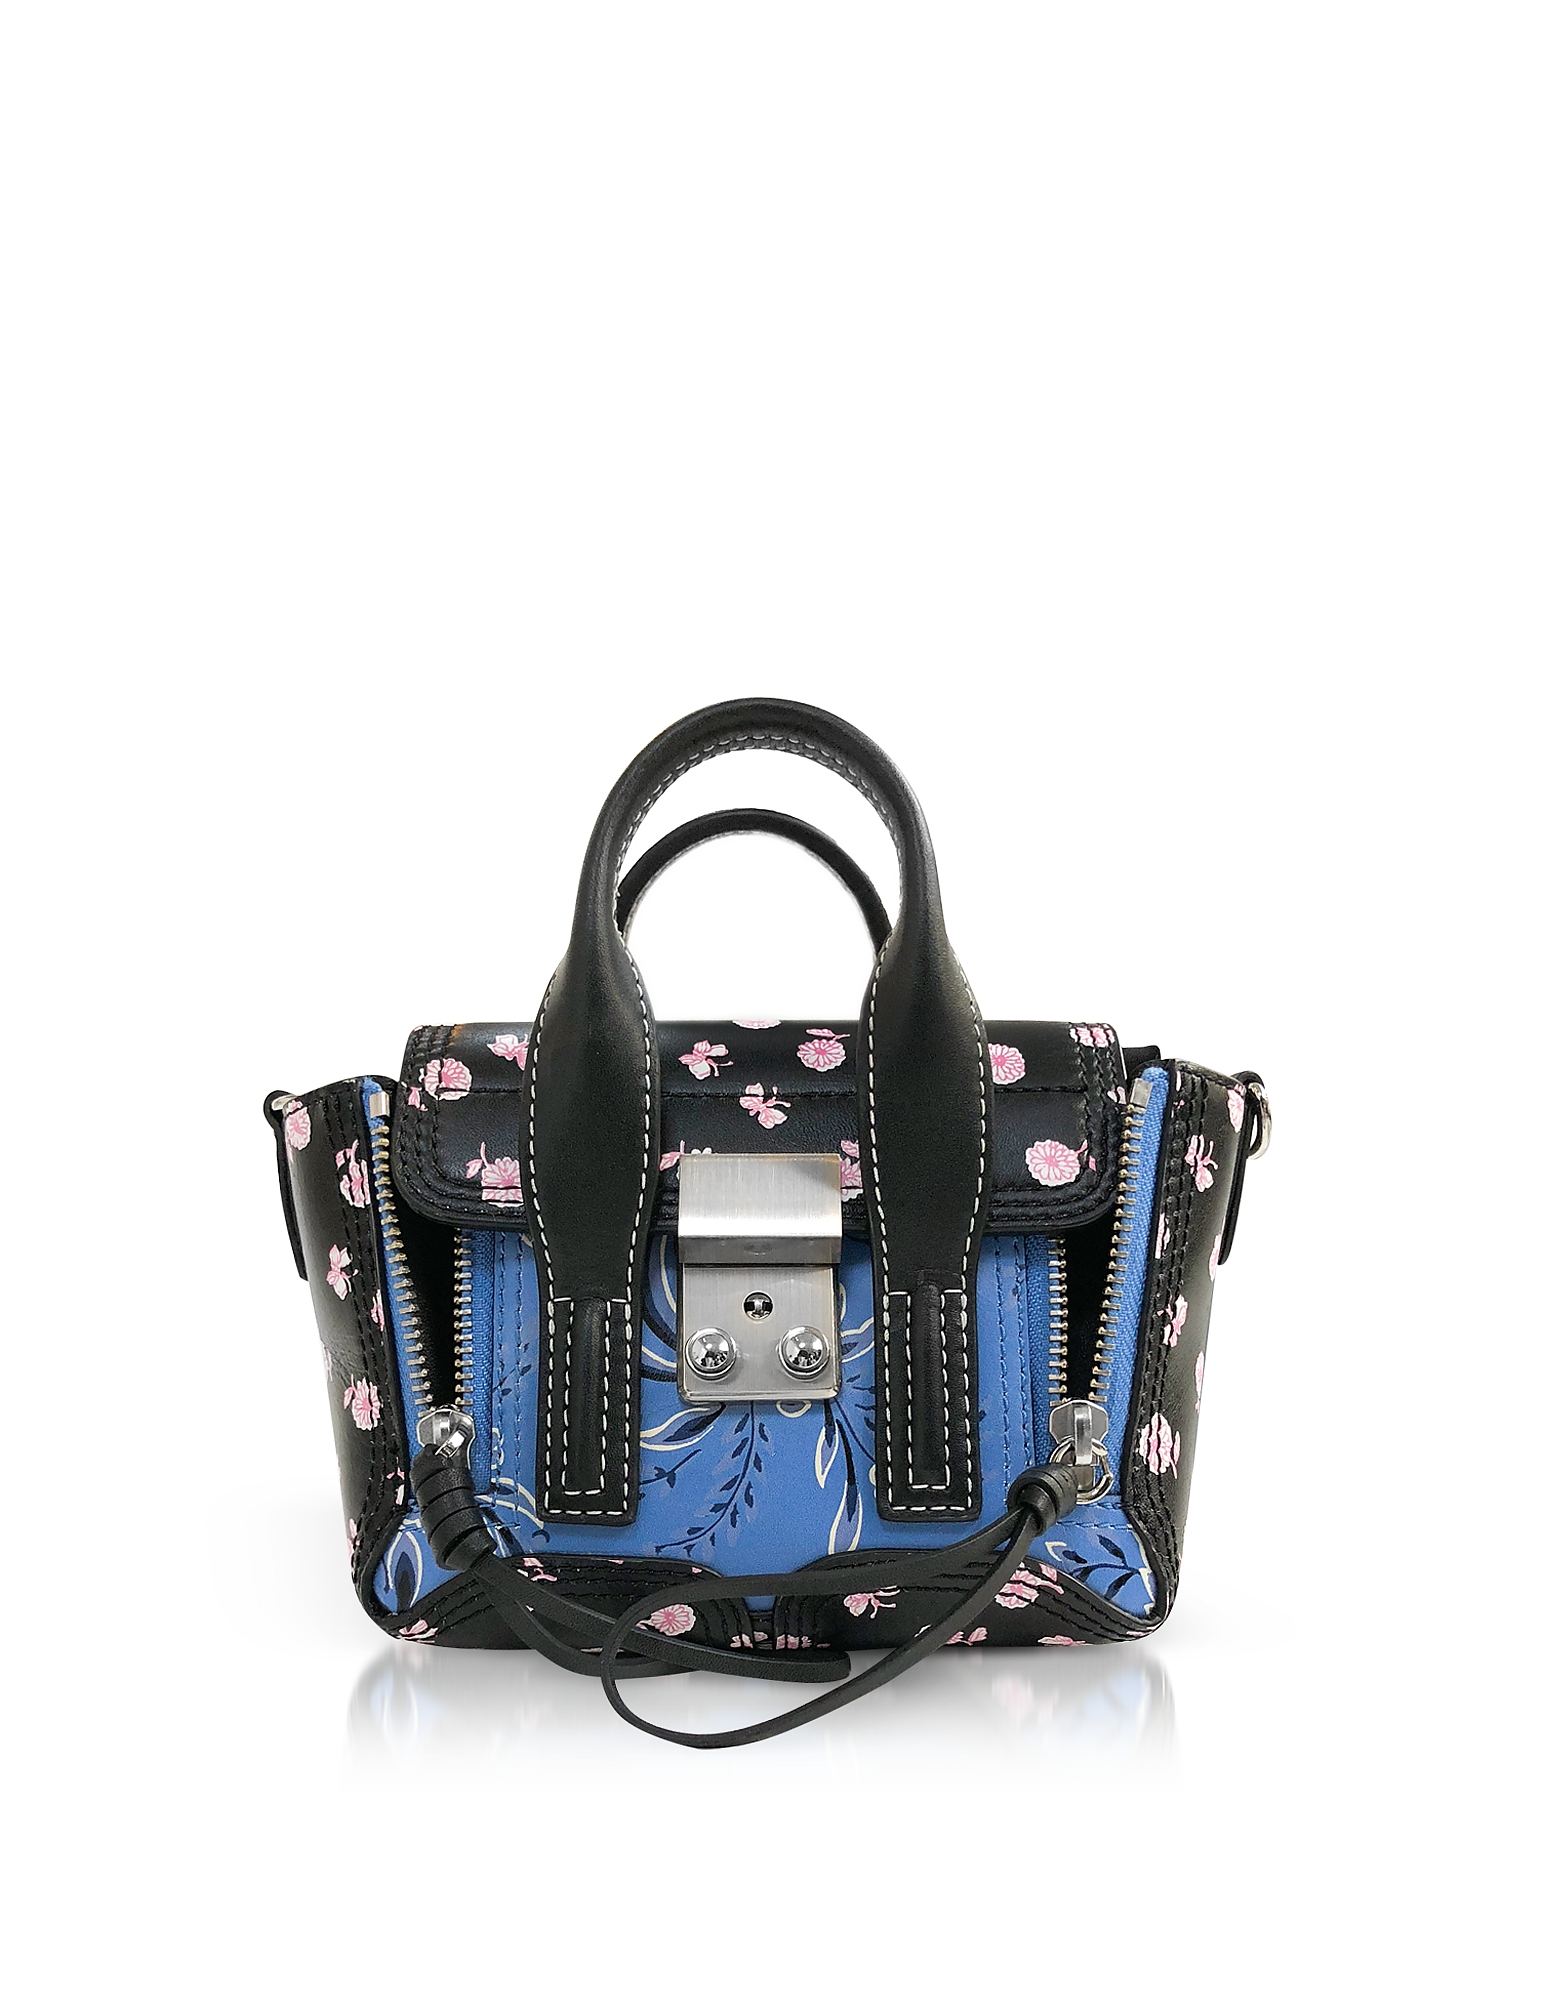 3.1 Phillip Lim Handbags, Black Multi Printed Leather Pashli Nano Satchel